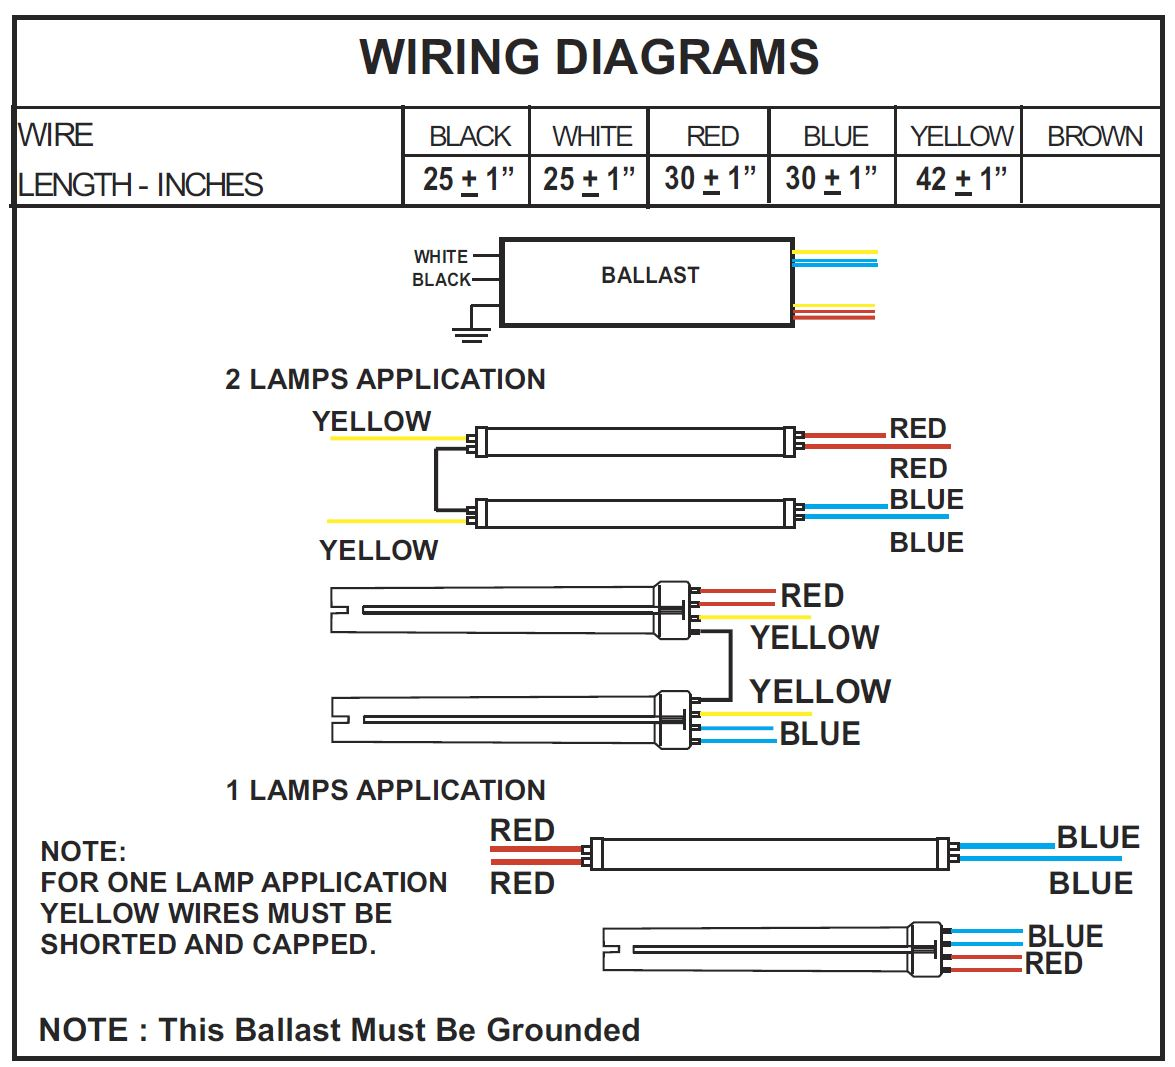 RHA UNV 254 LT5 wiring diagram rha unv 254 lt5 2 lamp t5 multi purpose electronic ballast t5 light fixtures wiring diagram at reclaimingppi.co